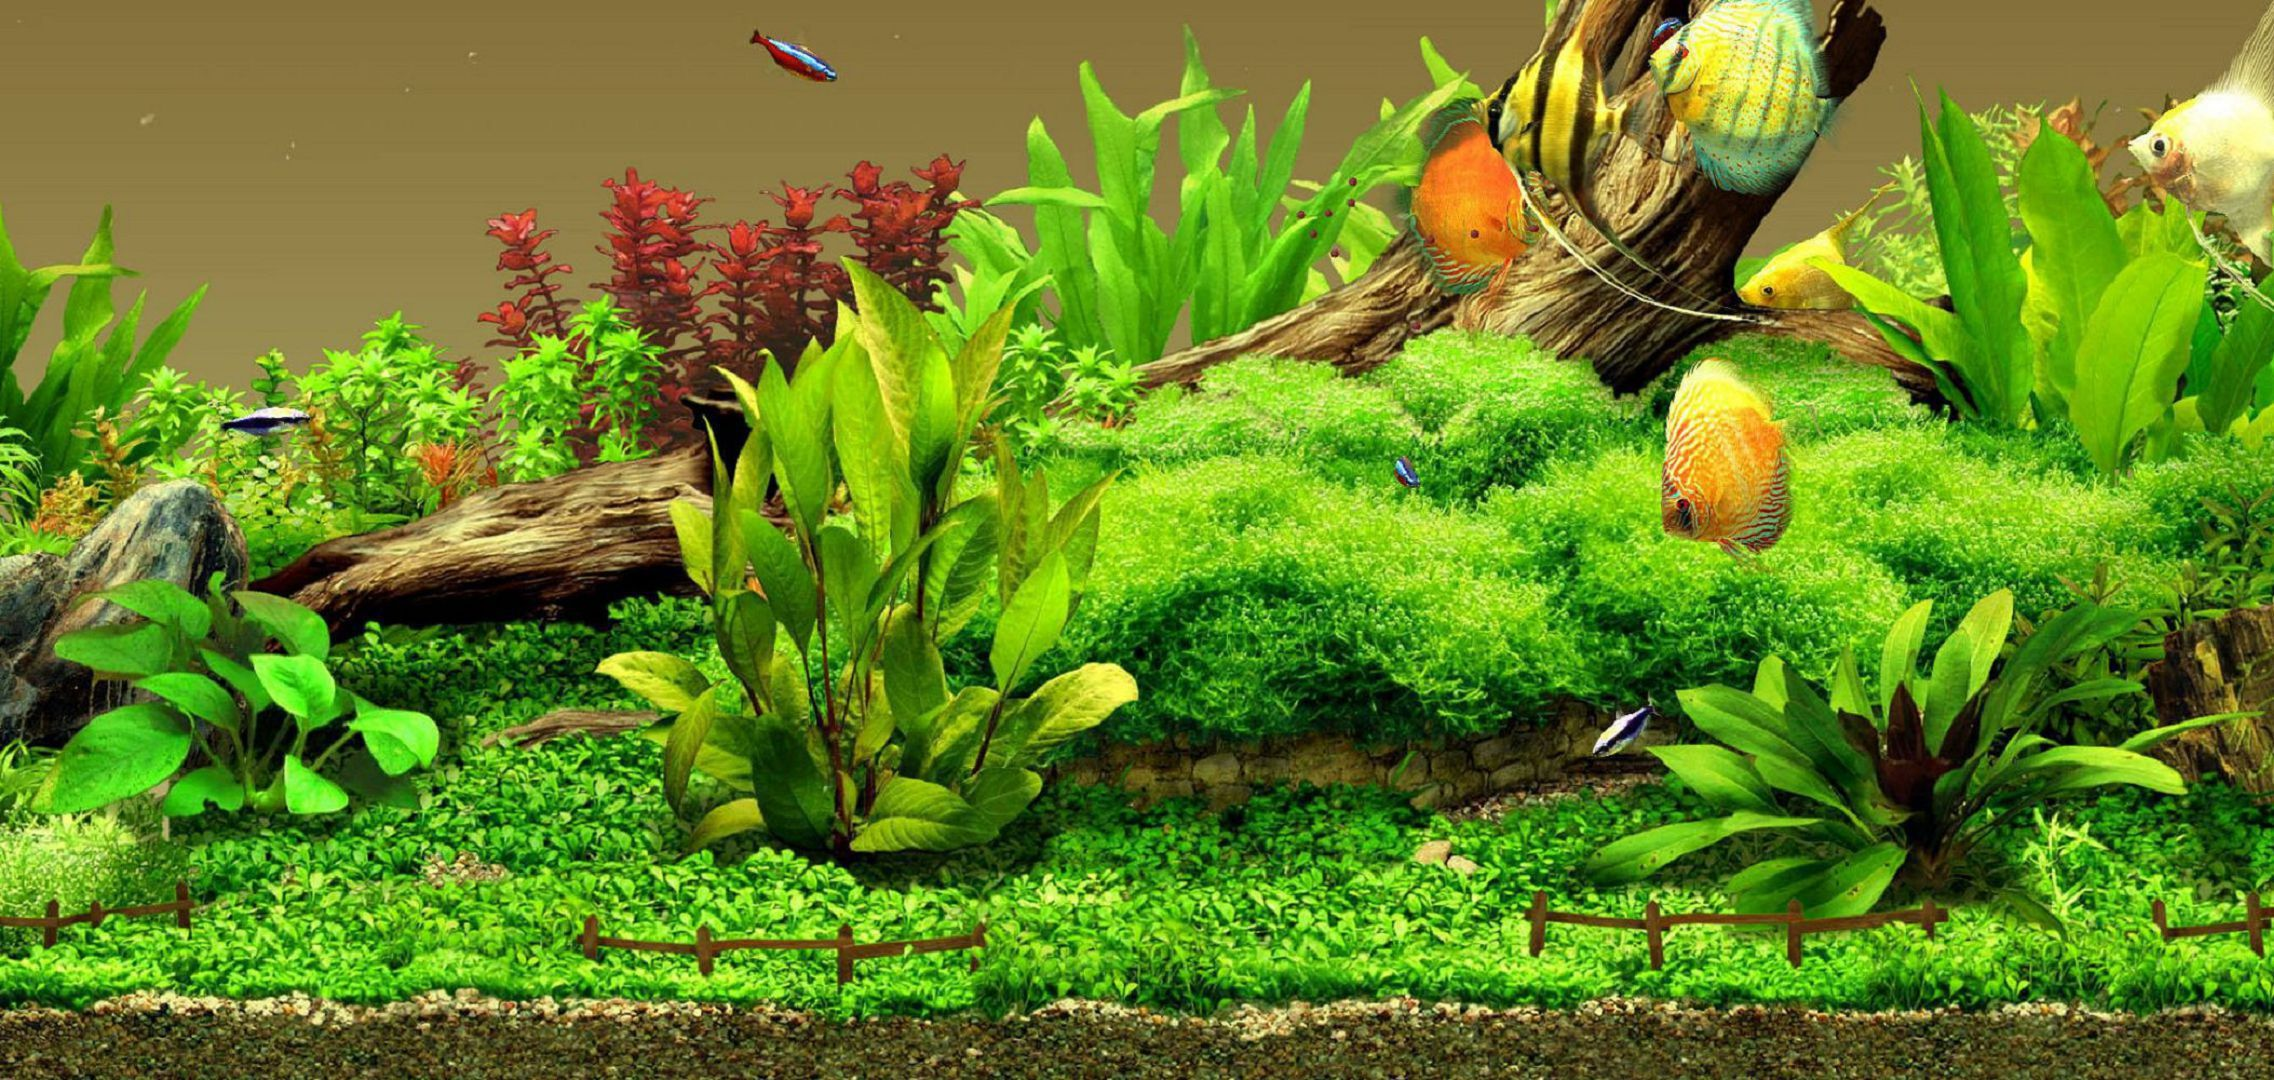 Aquarium High Quality Wallpapers